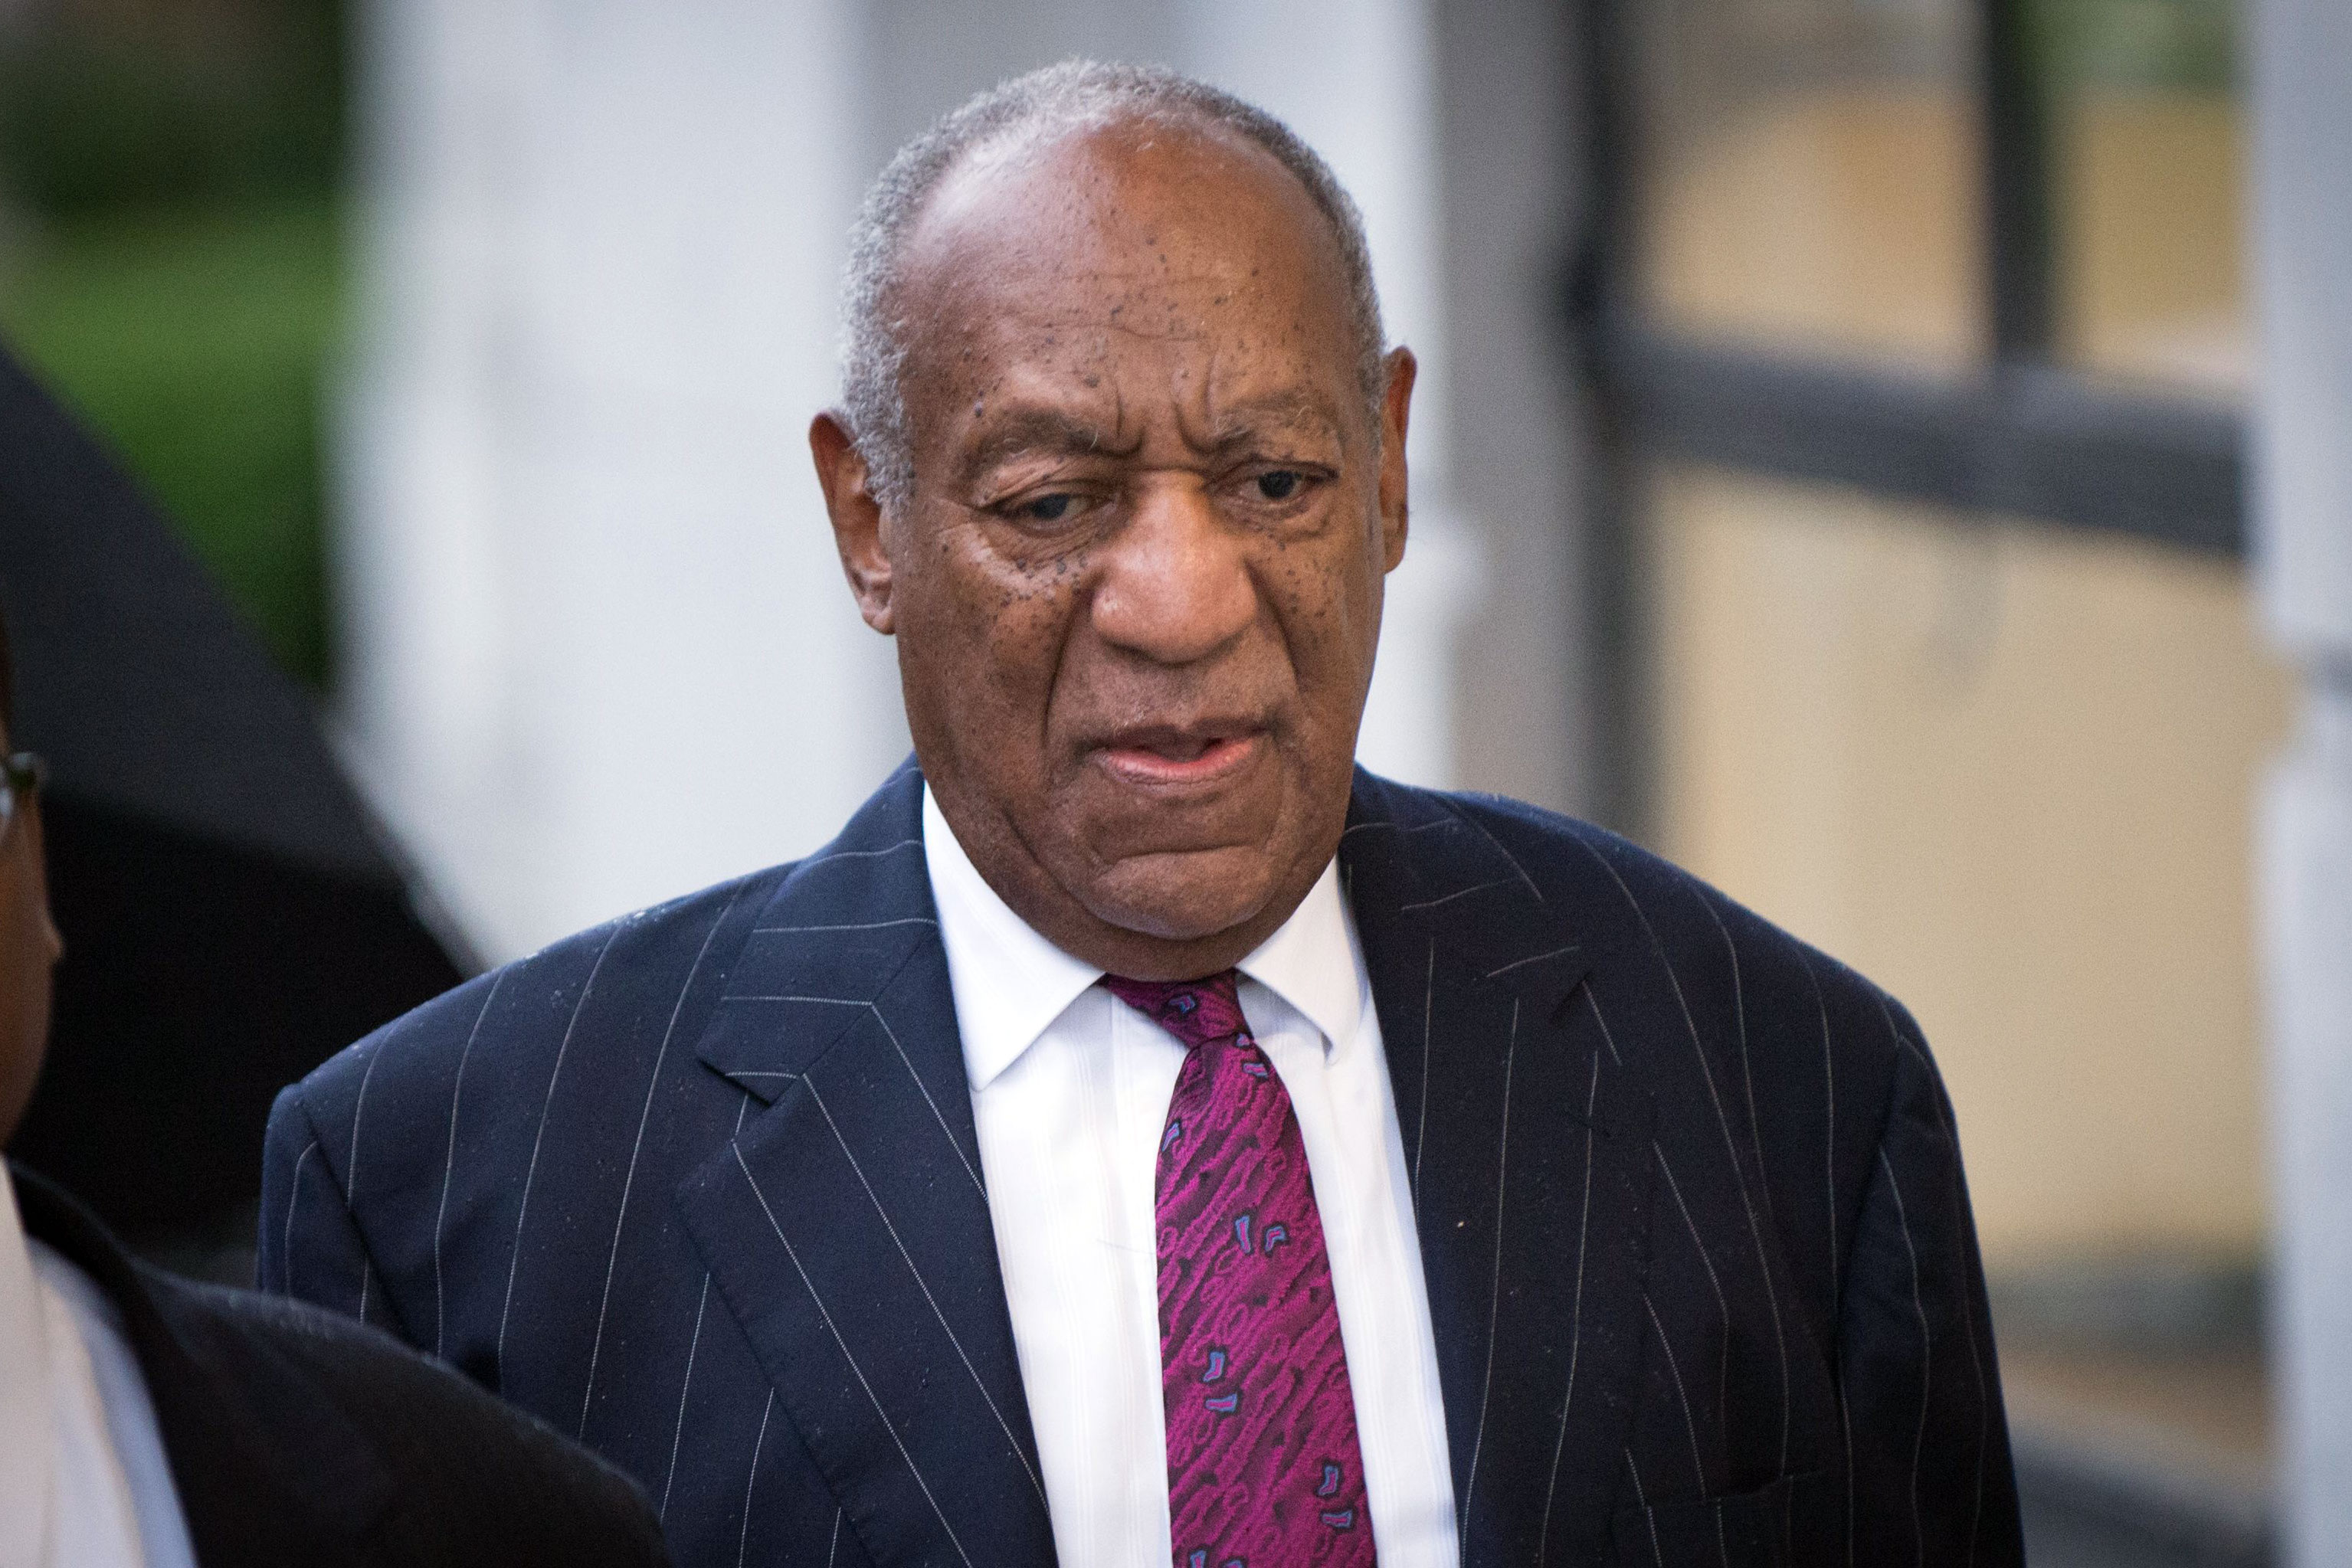 a63f23dca406 US entertainer Bill Cosby arrives at the Montgomery County Courthouse in  Norristown, Pennsylvania, USA